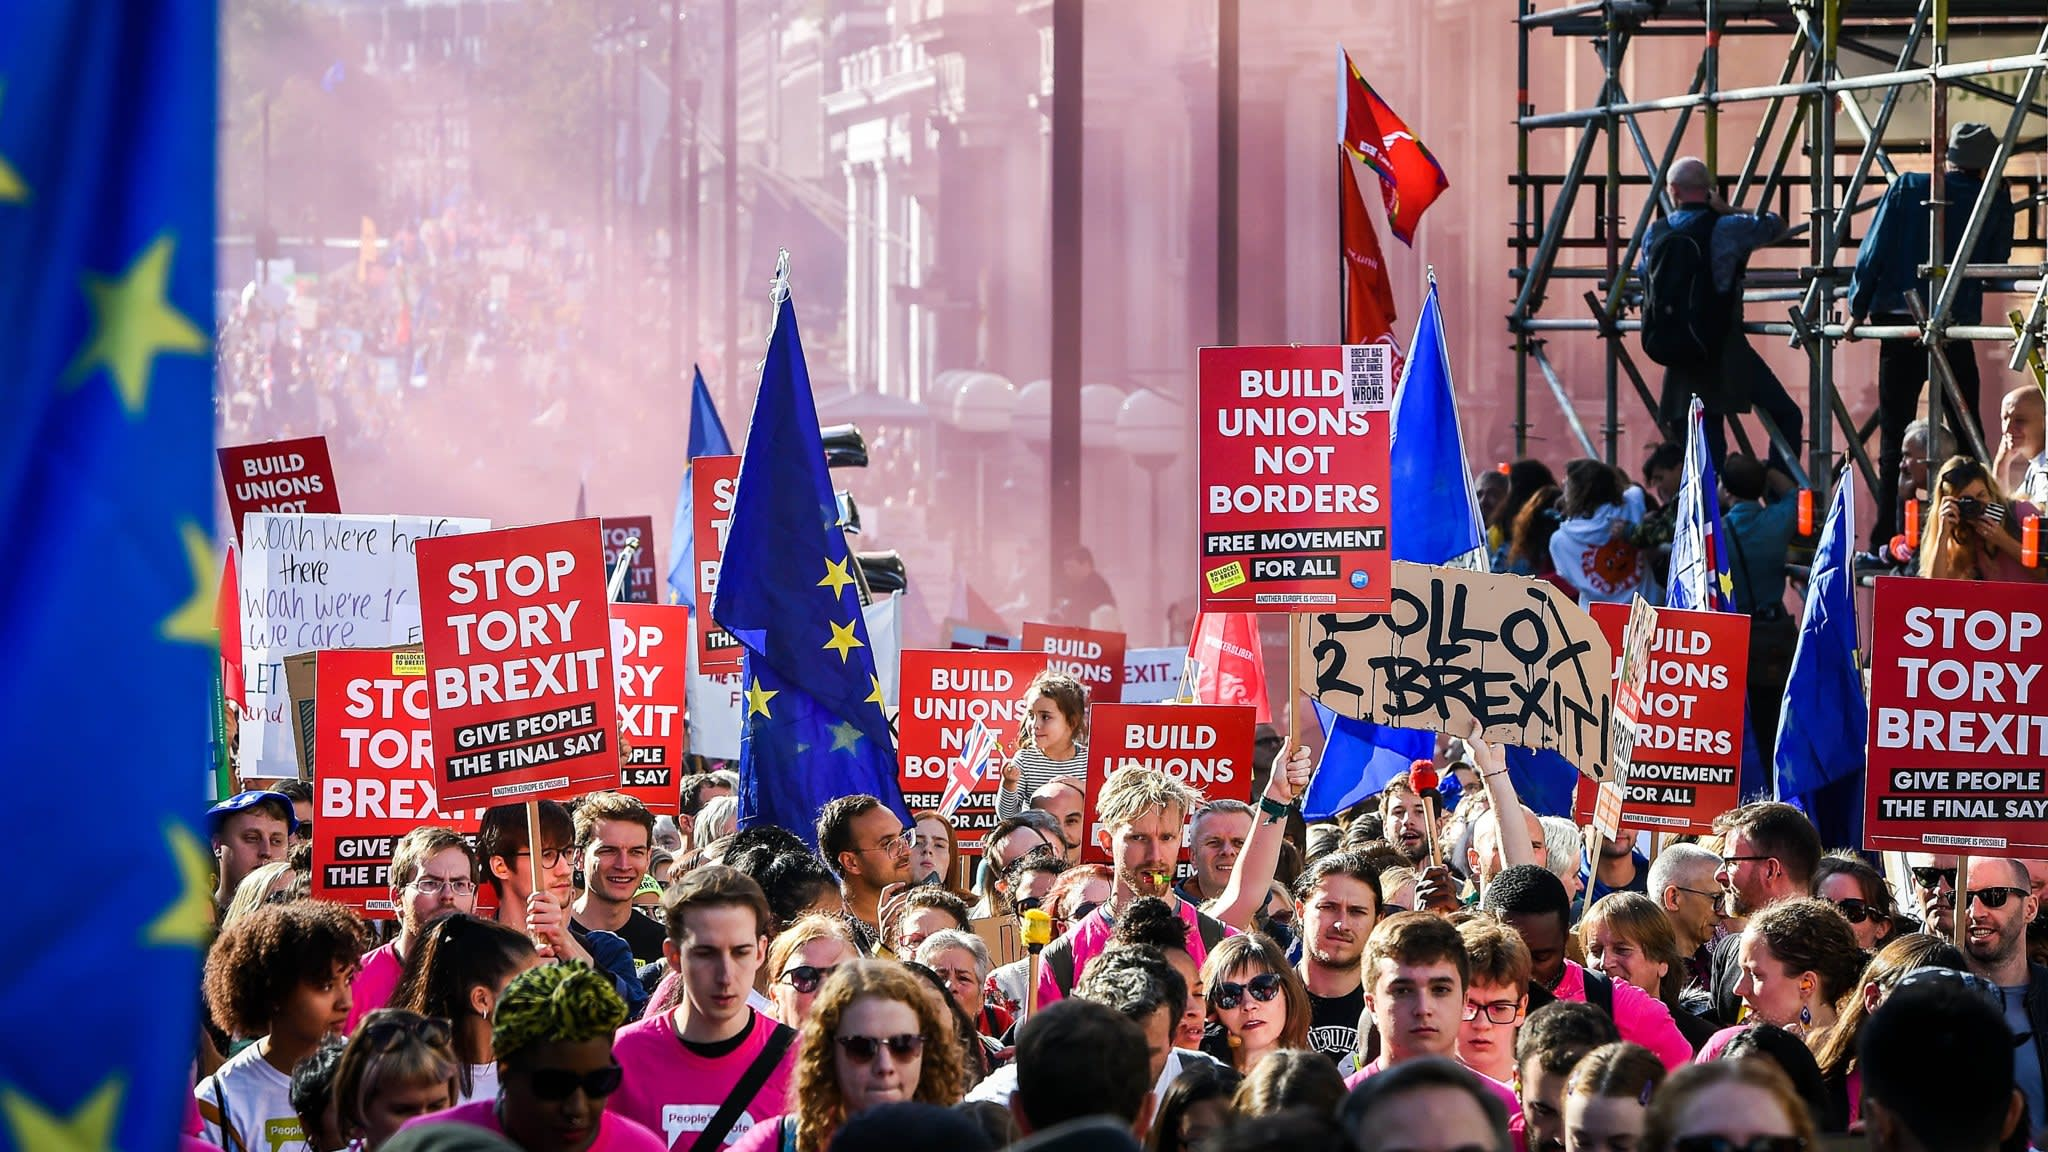 London marchers call for new Brexit vote